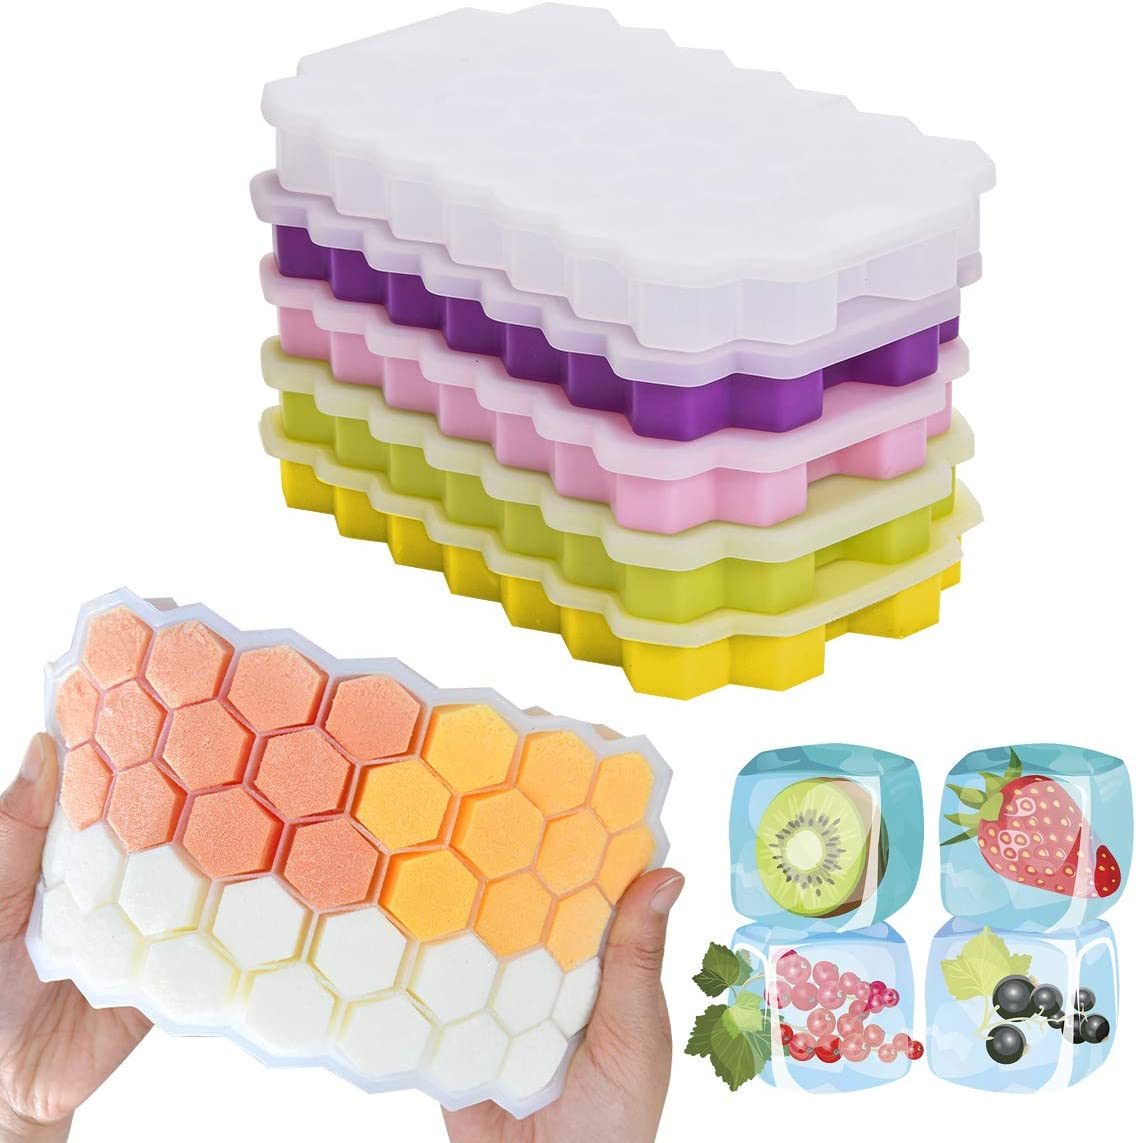 Loistu Ice Cube Trays, 5 Pack of Ice Trays with Lid, BPA Free, for Cocktail, Whiskey, Baby Food, Chocolate, Stackable and Durable